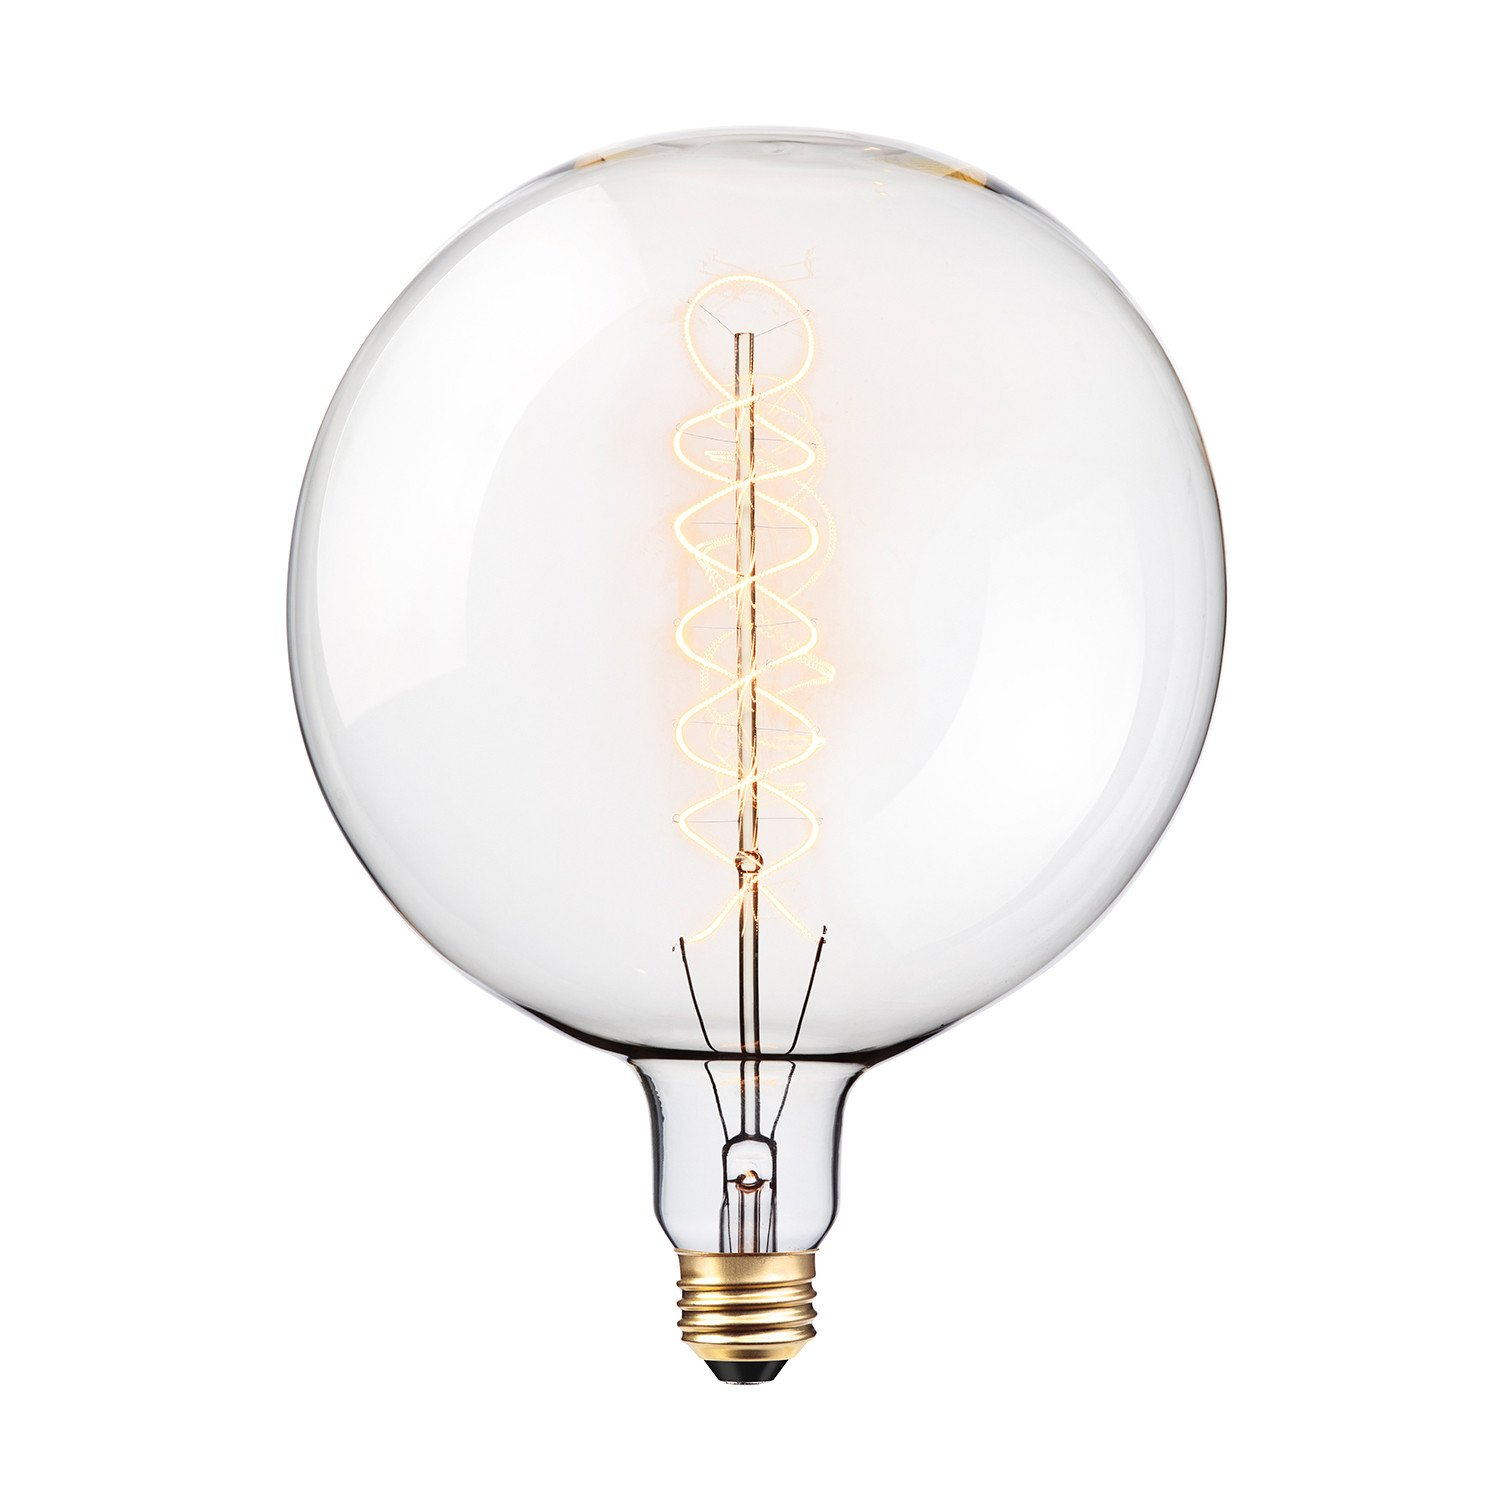 Globe Electric Oversized Round Vintage 100W Clear Glass Dimmable Incandescent Light Bulb, E26 Base, 400 Lumens, 80128